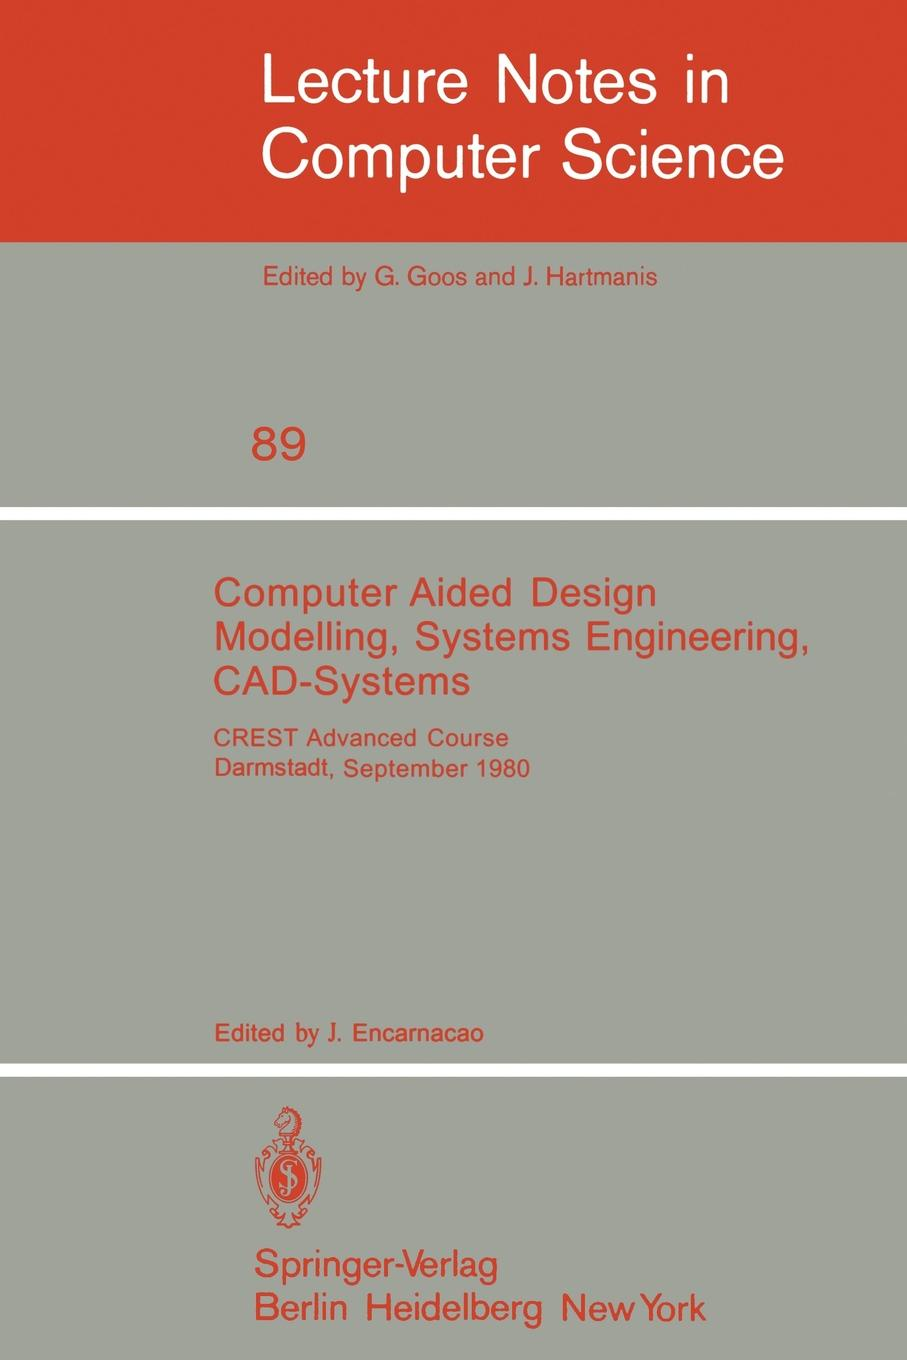 Computer Aided Design Modelling, Systems Engineering, CAD-Systems. CREST Advanced Course, Darmstadt, 8. - 19. September 1980 feng fu advanced modelling techniques in structural design